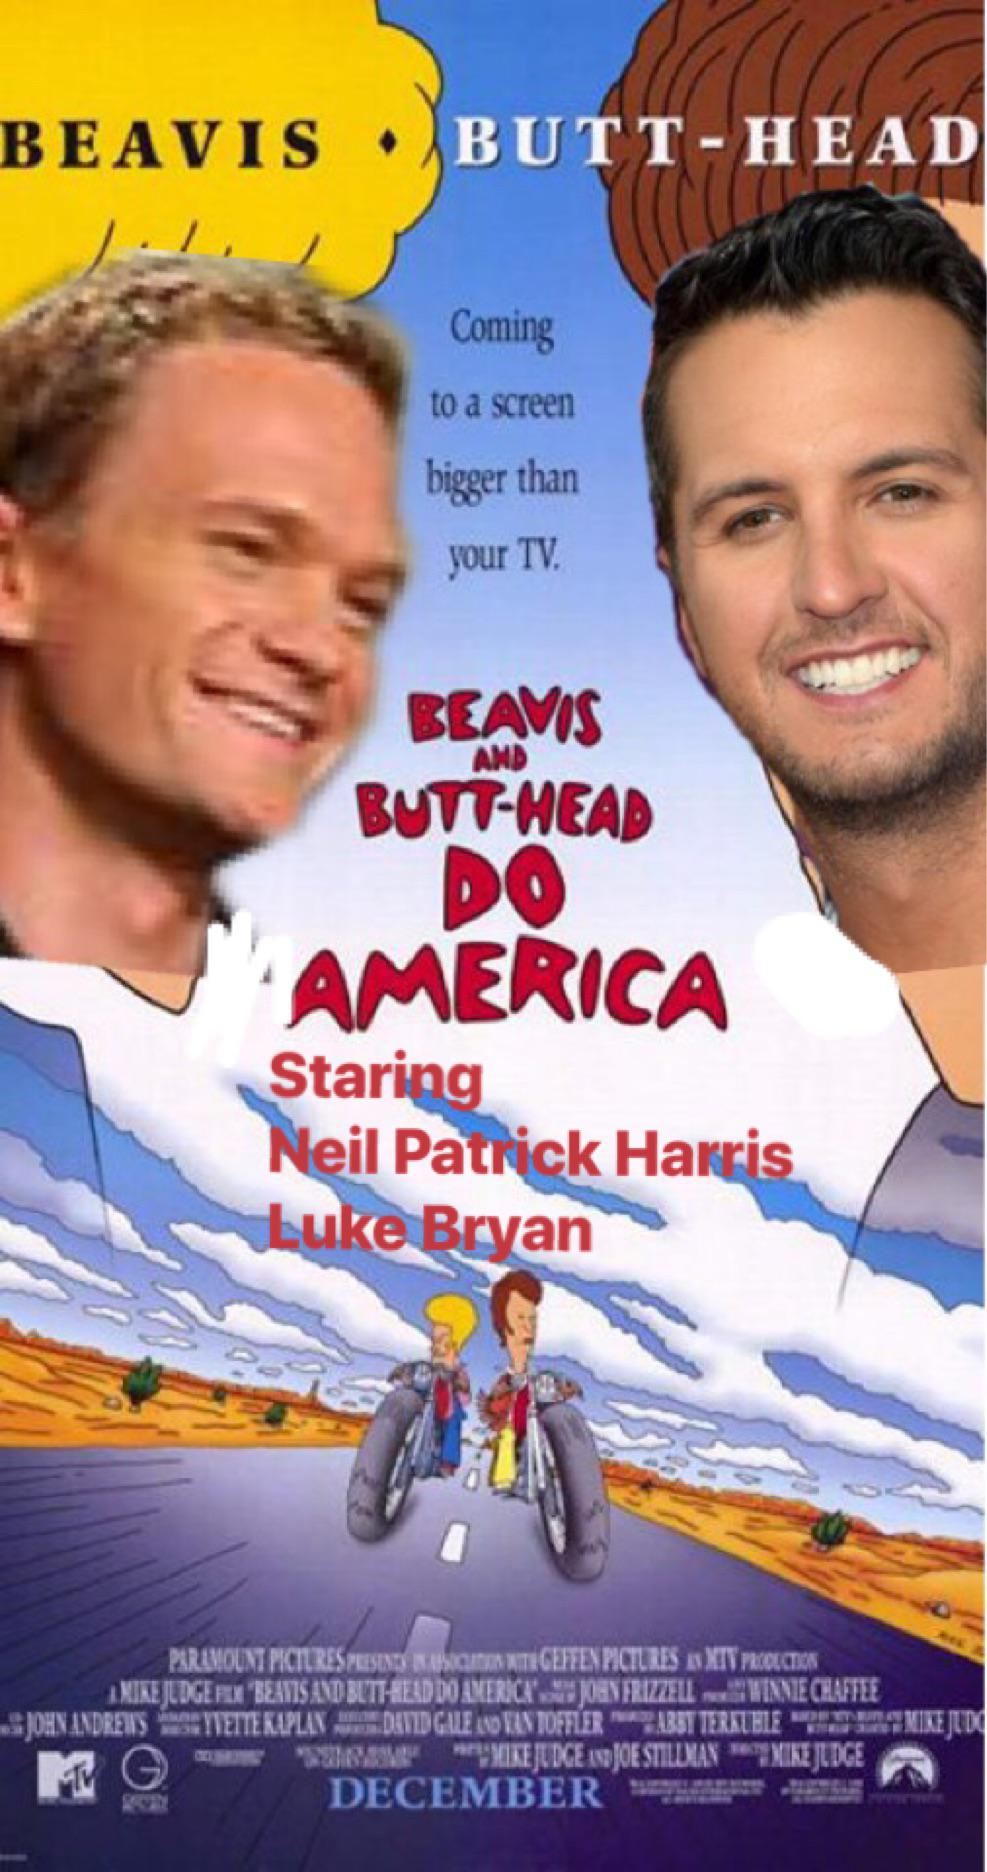 Luke Bryan Beavis And : bryan, beavis, Action, Movie, Wanna, Funny